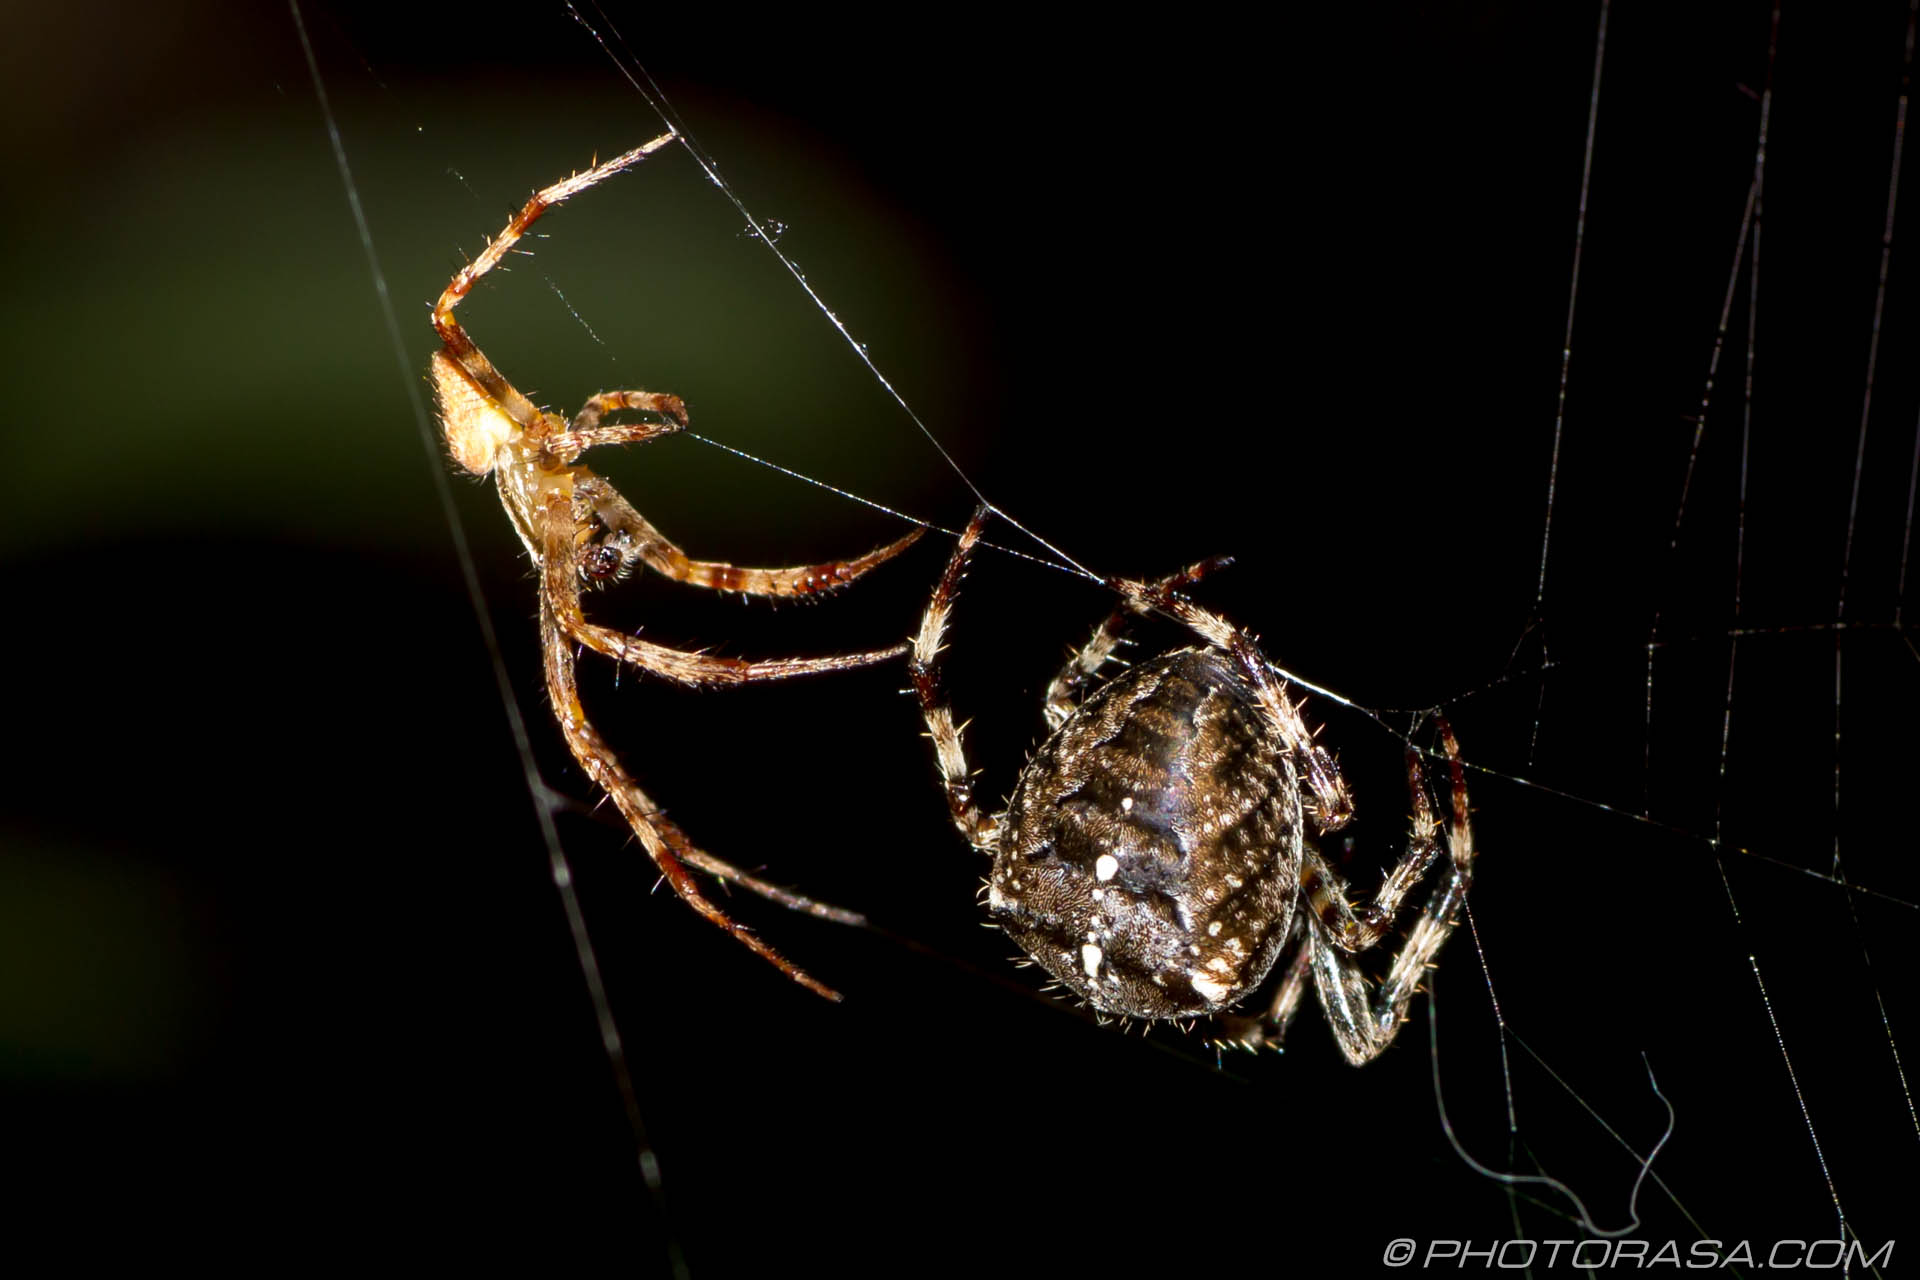 http://photorasa.com/little-large-spider-courtship/sideways-strategy/